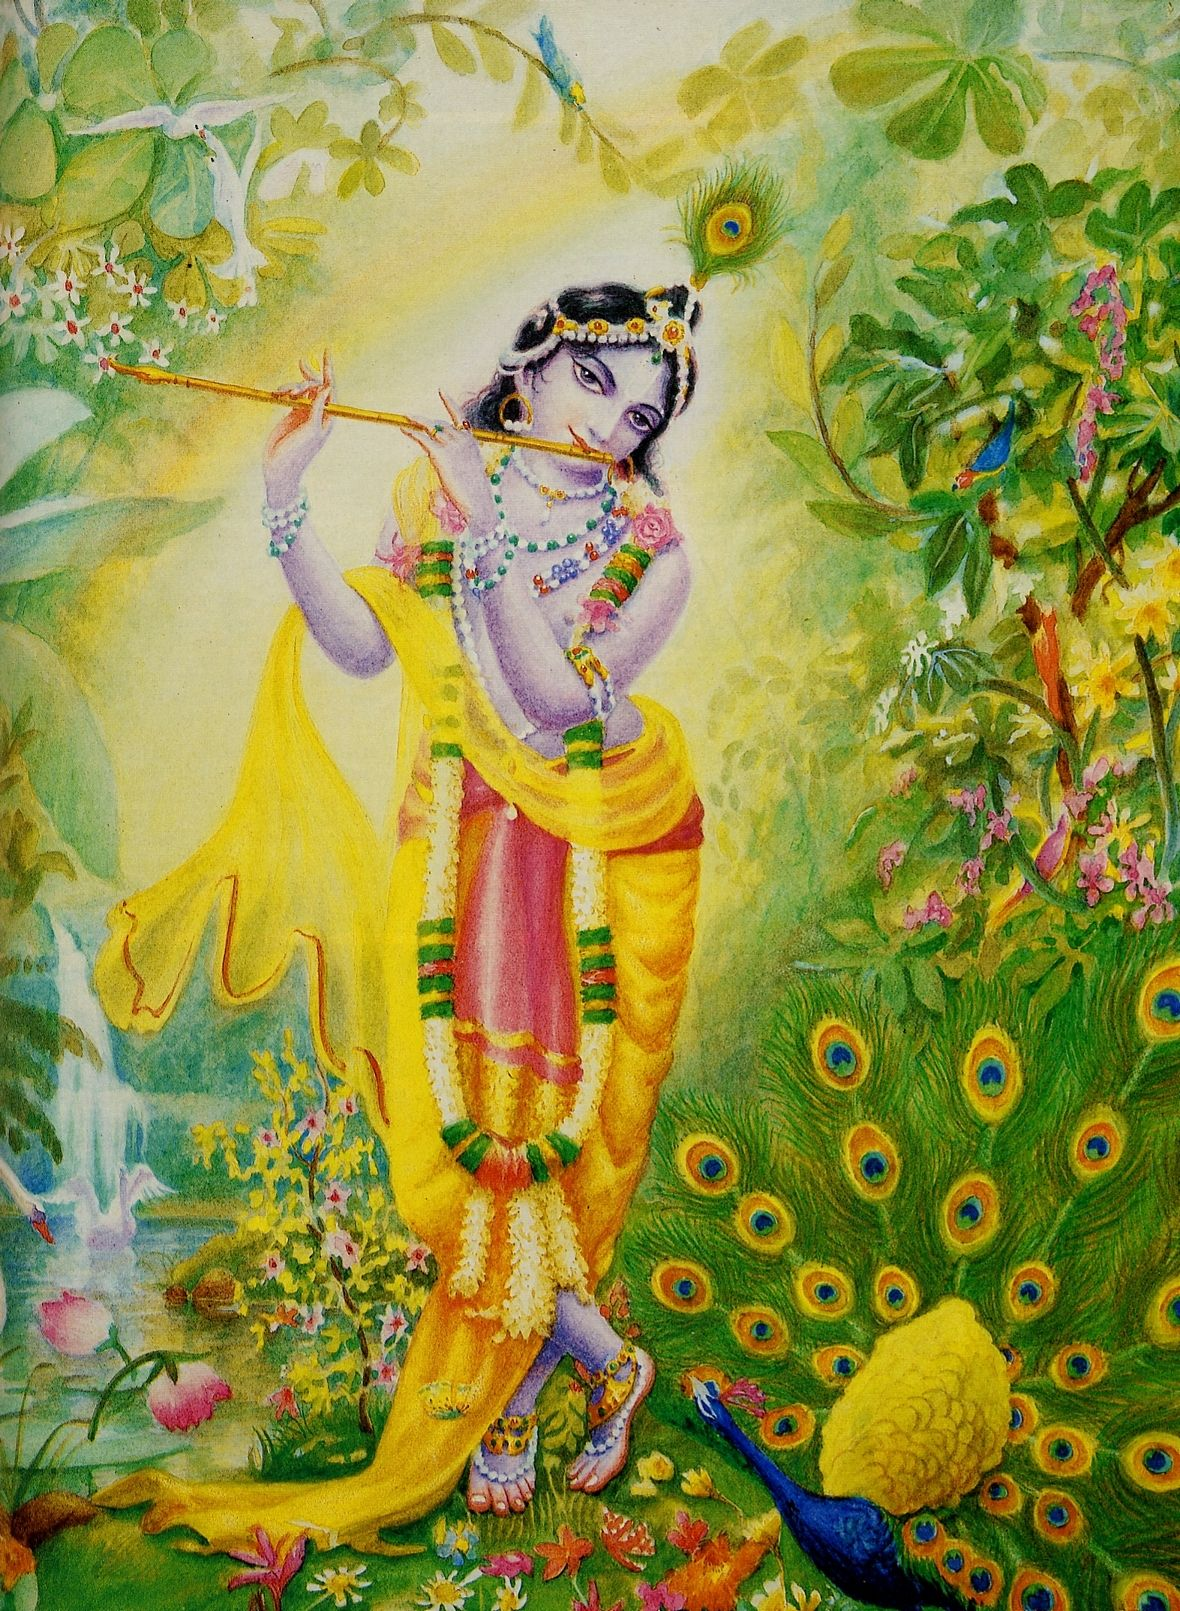 The Supreme Personality of Godhead